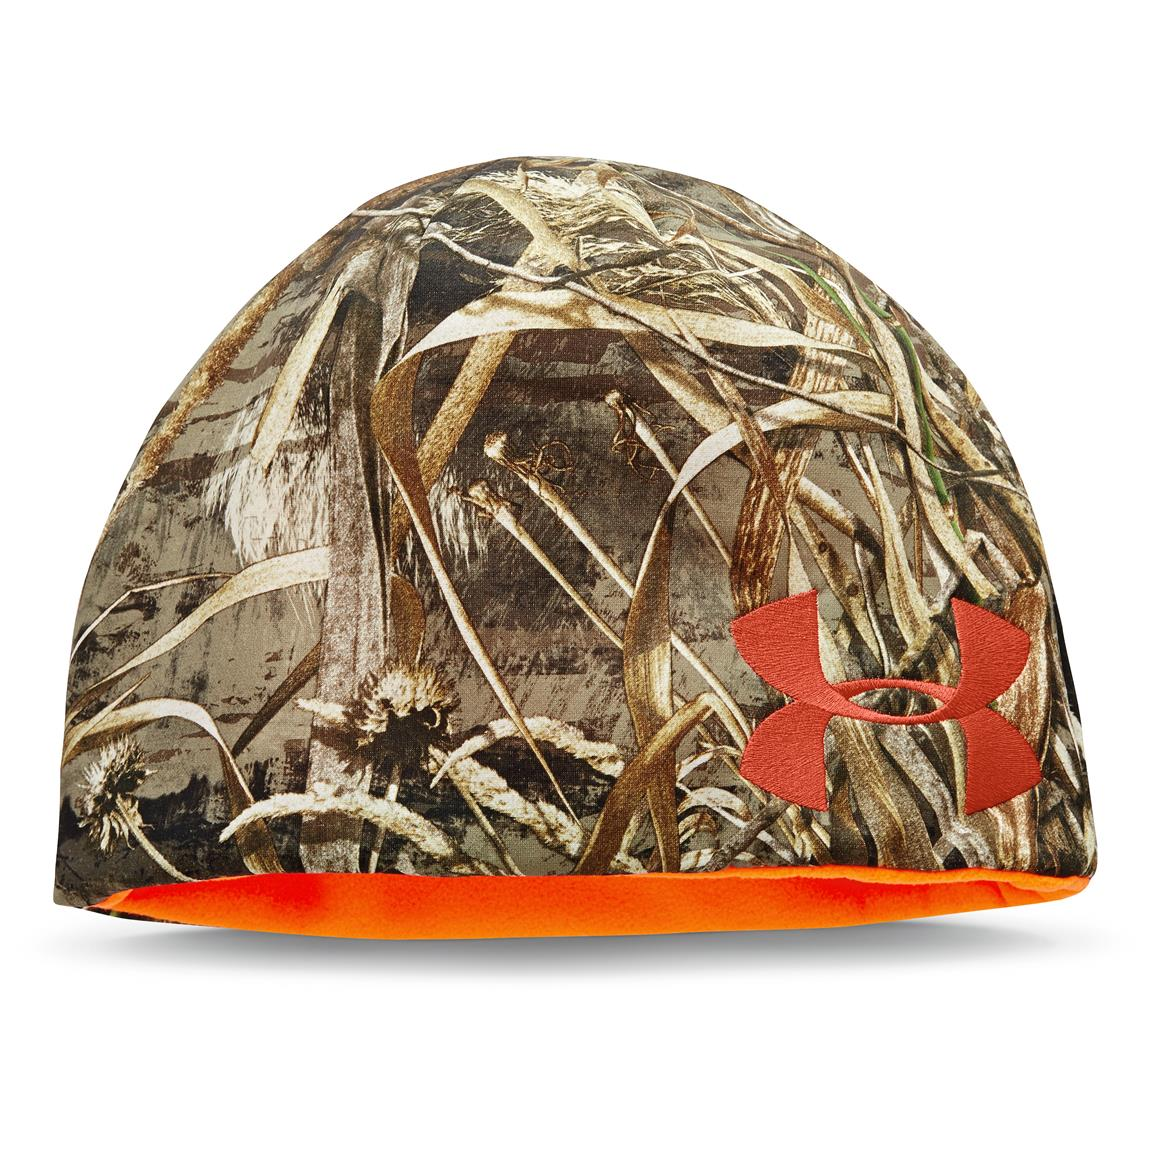 Under Armour Reversible Fleece Beanie, Realtree Max-5